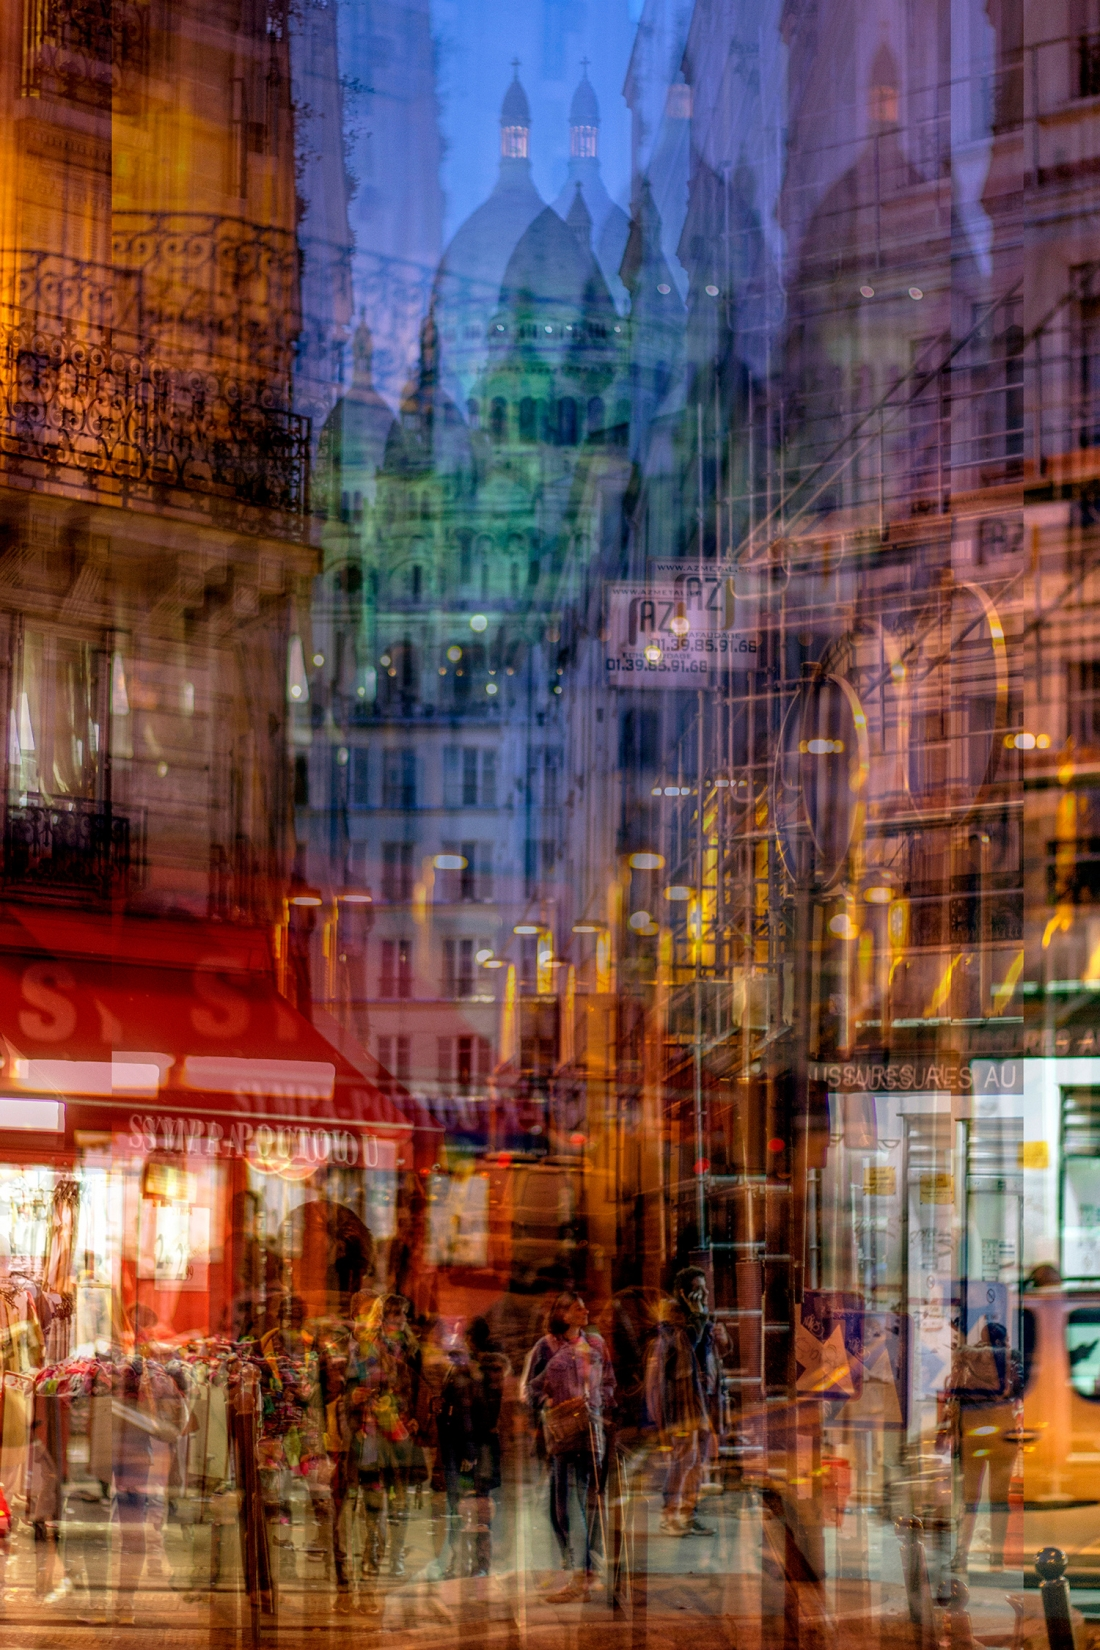 Urban Melodies: Photographer layers multiple images to create stunning city artworks